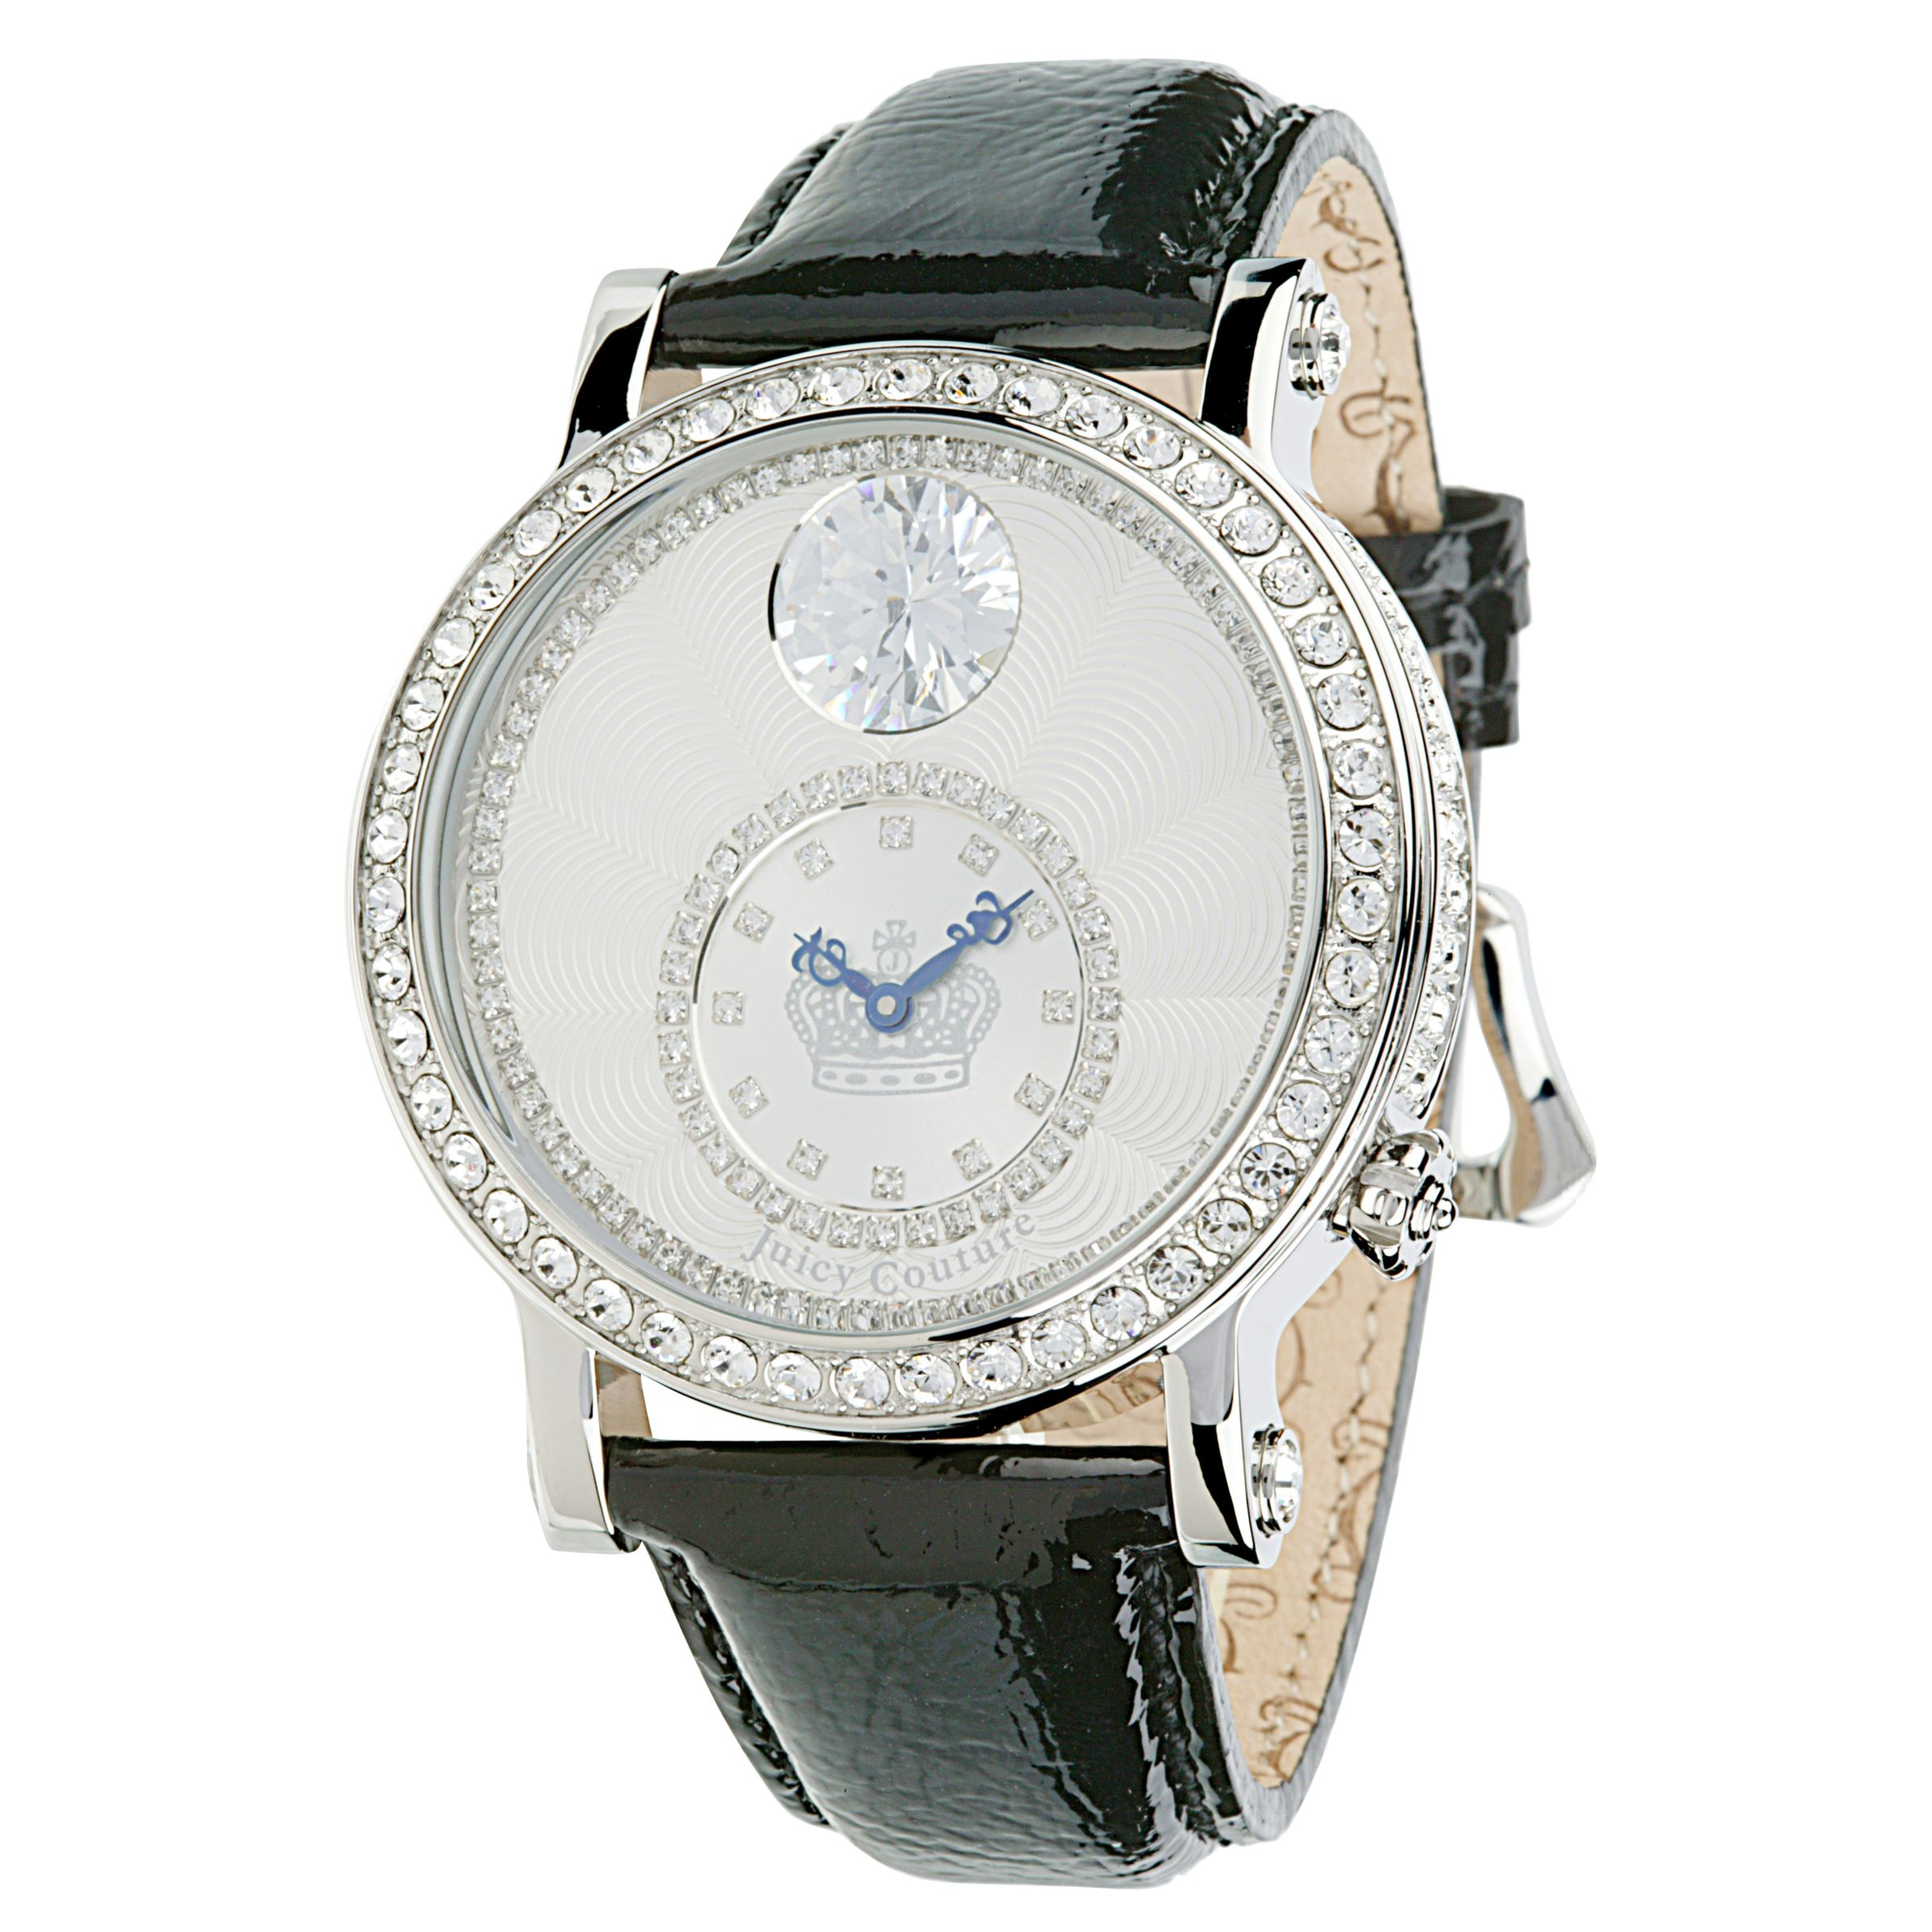 Juicy Couture 1900685 Women